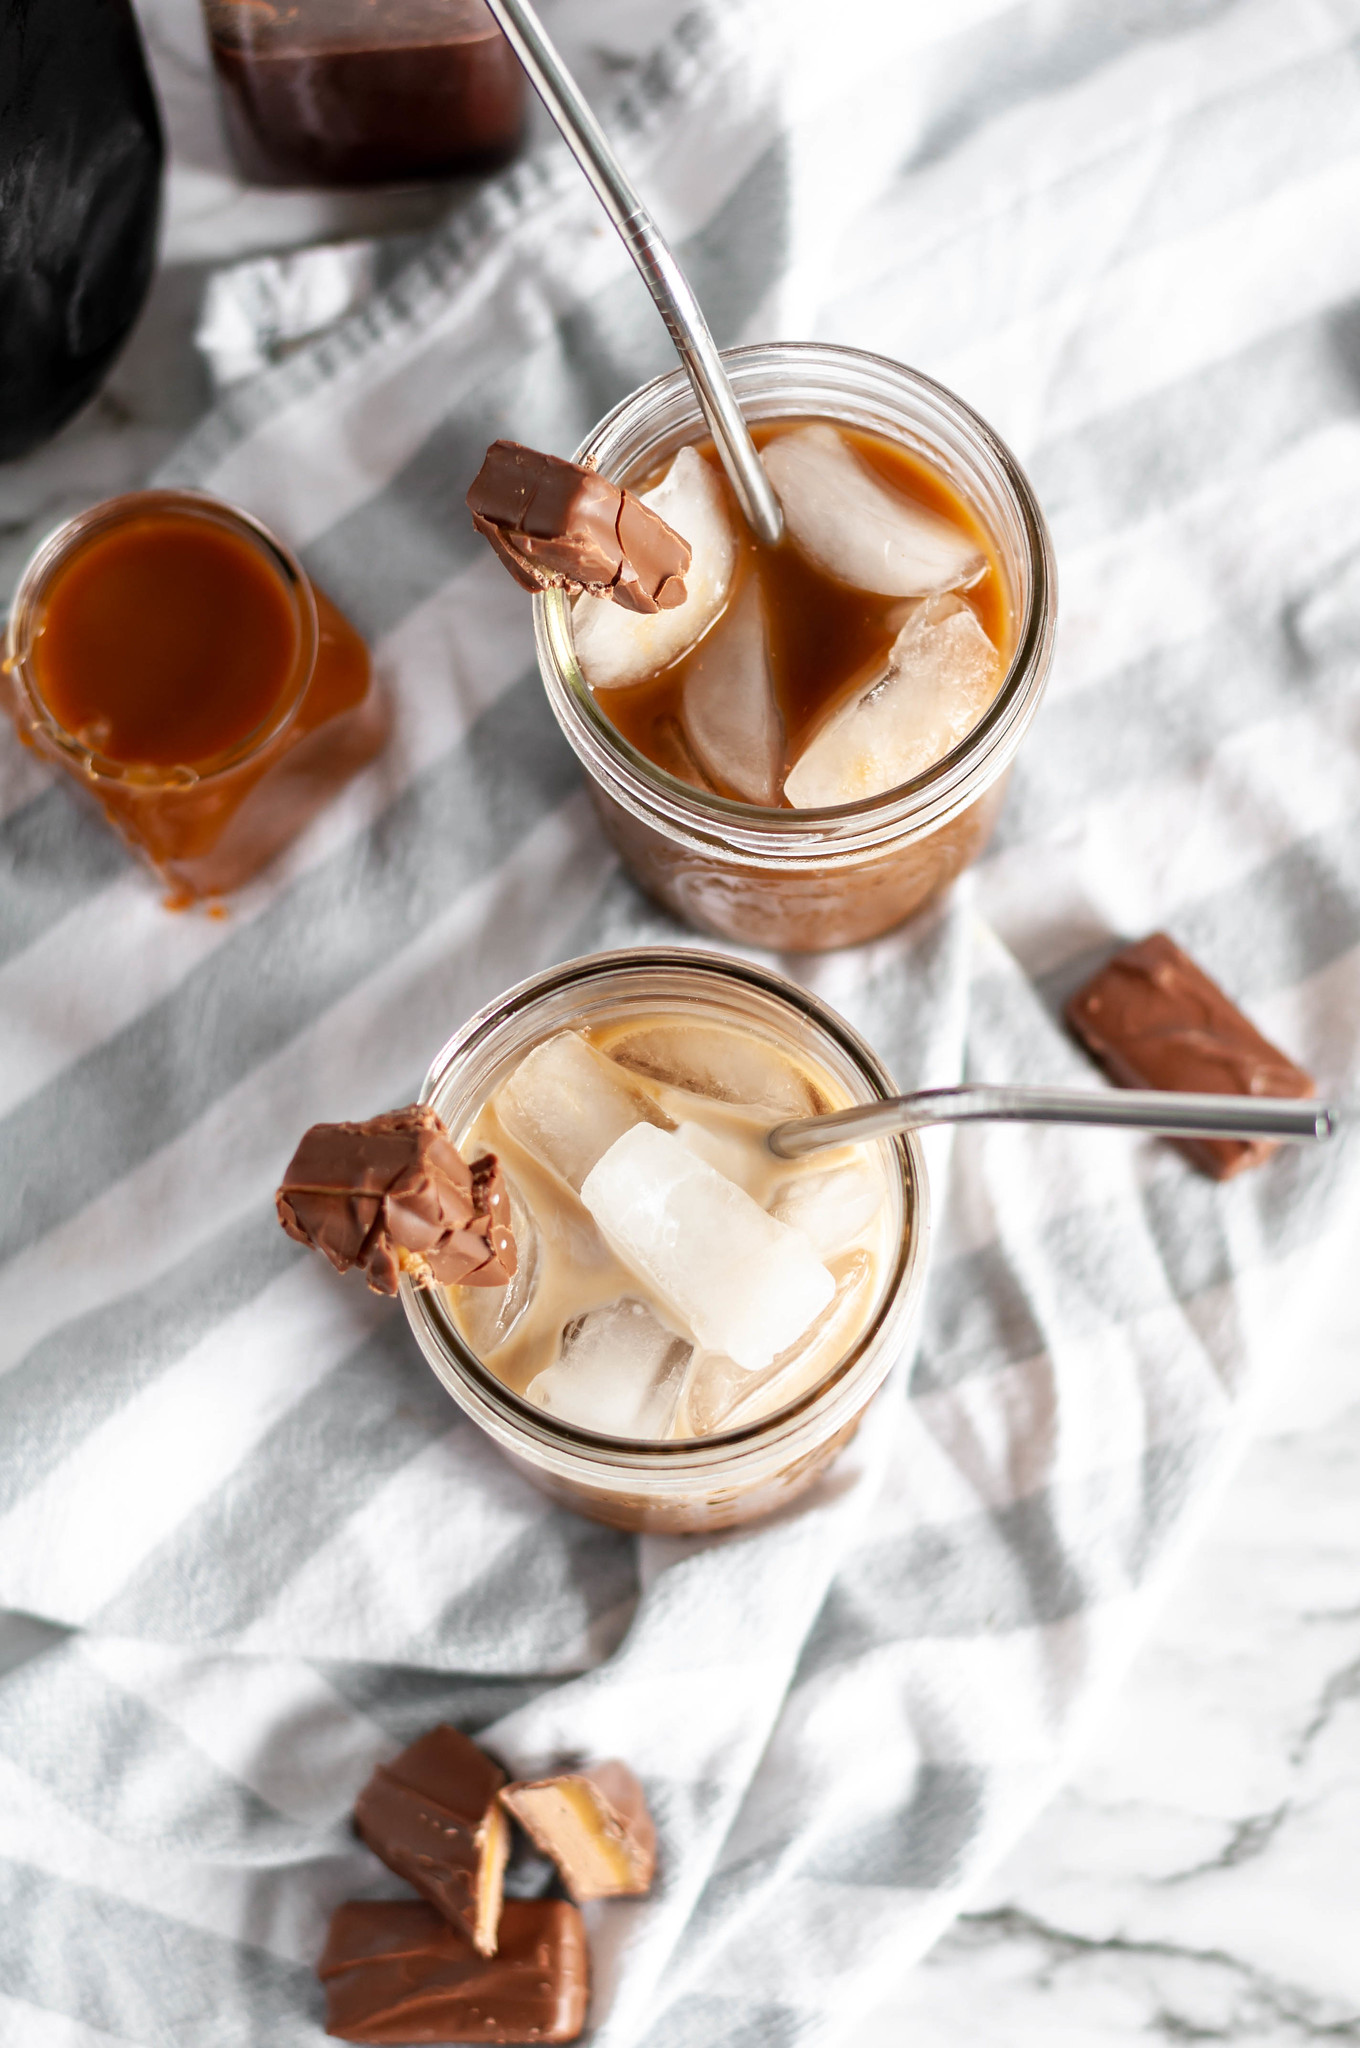 Milky Way Iced Coffee takes all the classic chocolate, caramel and malt flavors of the candy bar and turns it into the perfect way to start your morning.